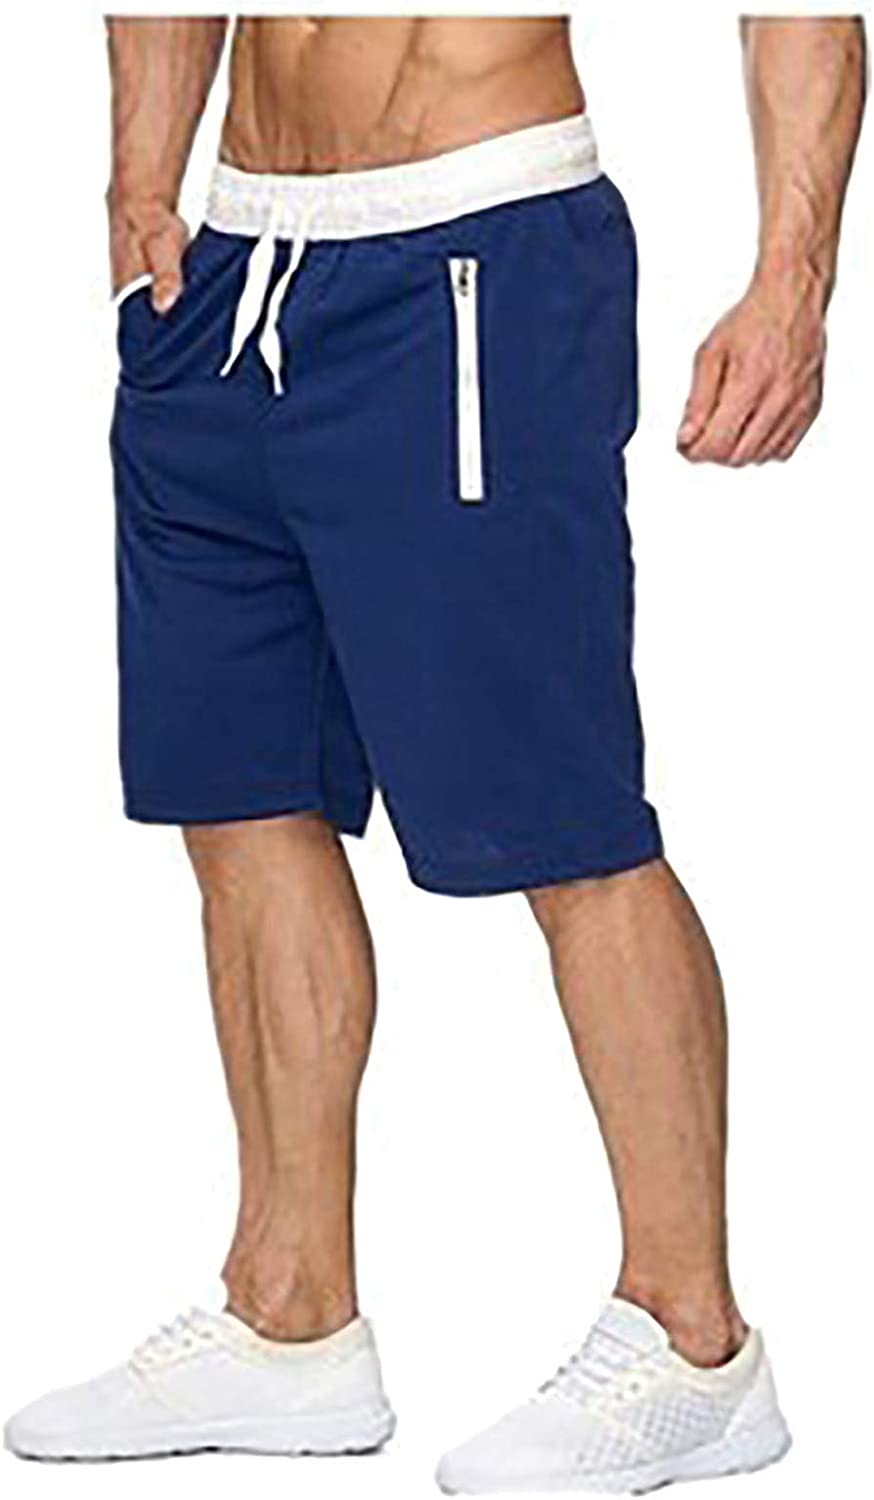 2021 Men's Summer Sports Casual Zippered Drawstring Shorts in Solid Color